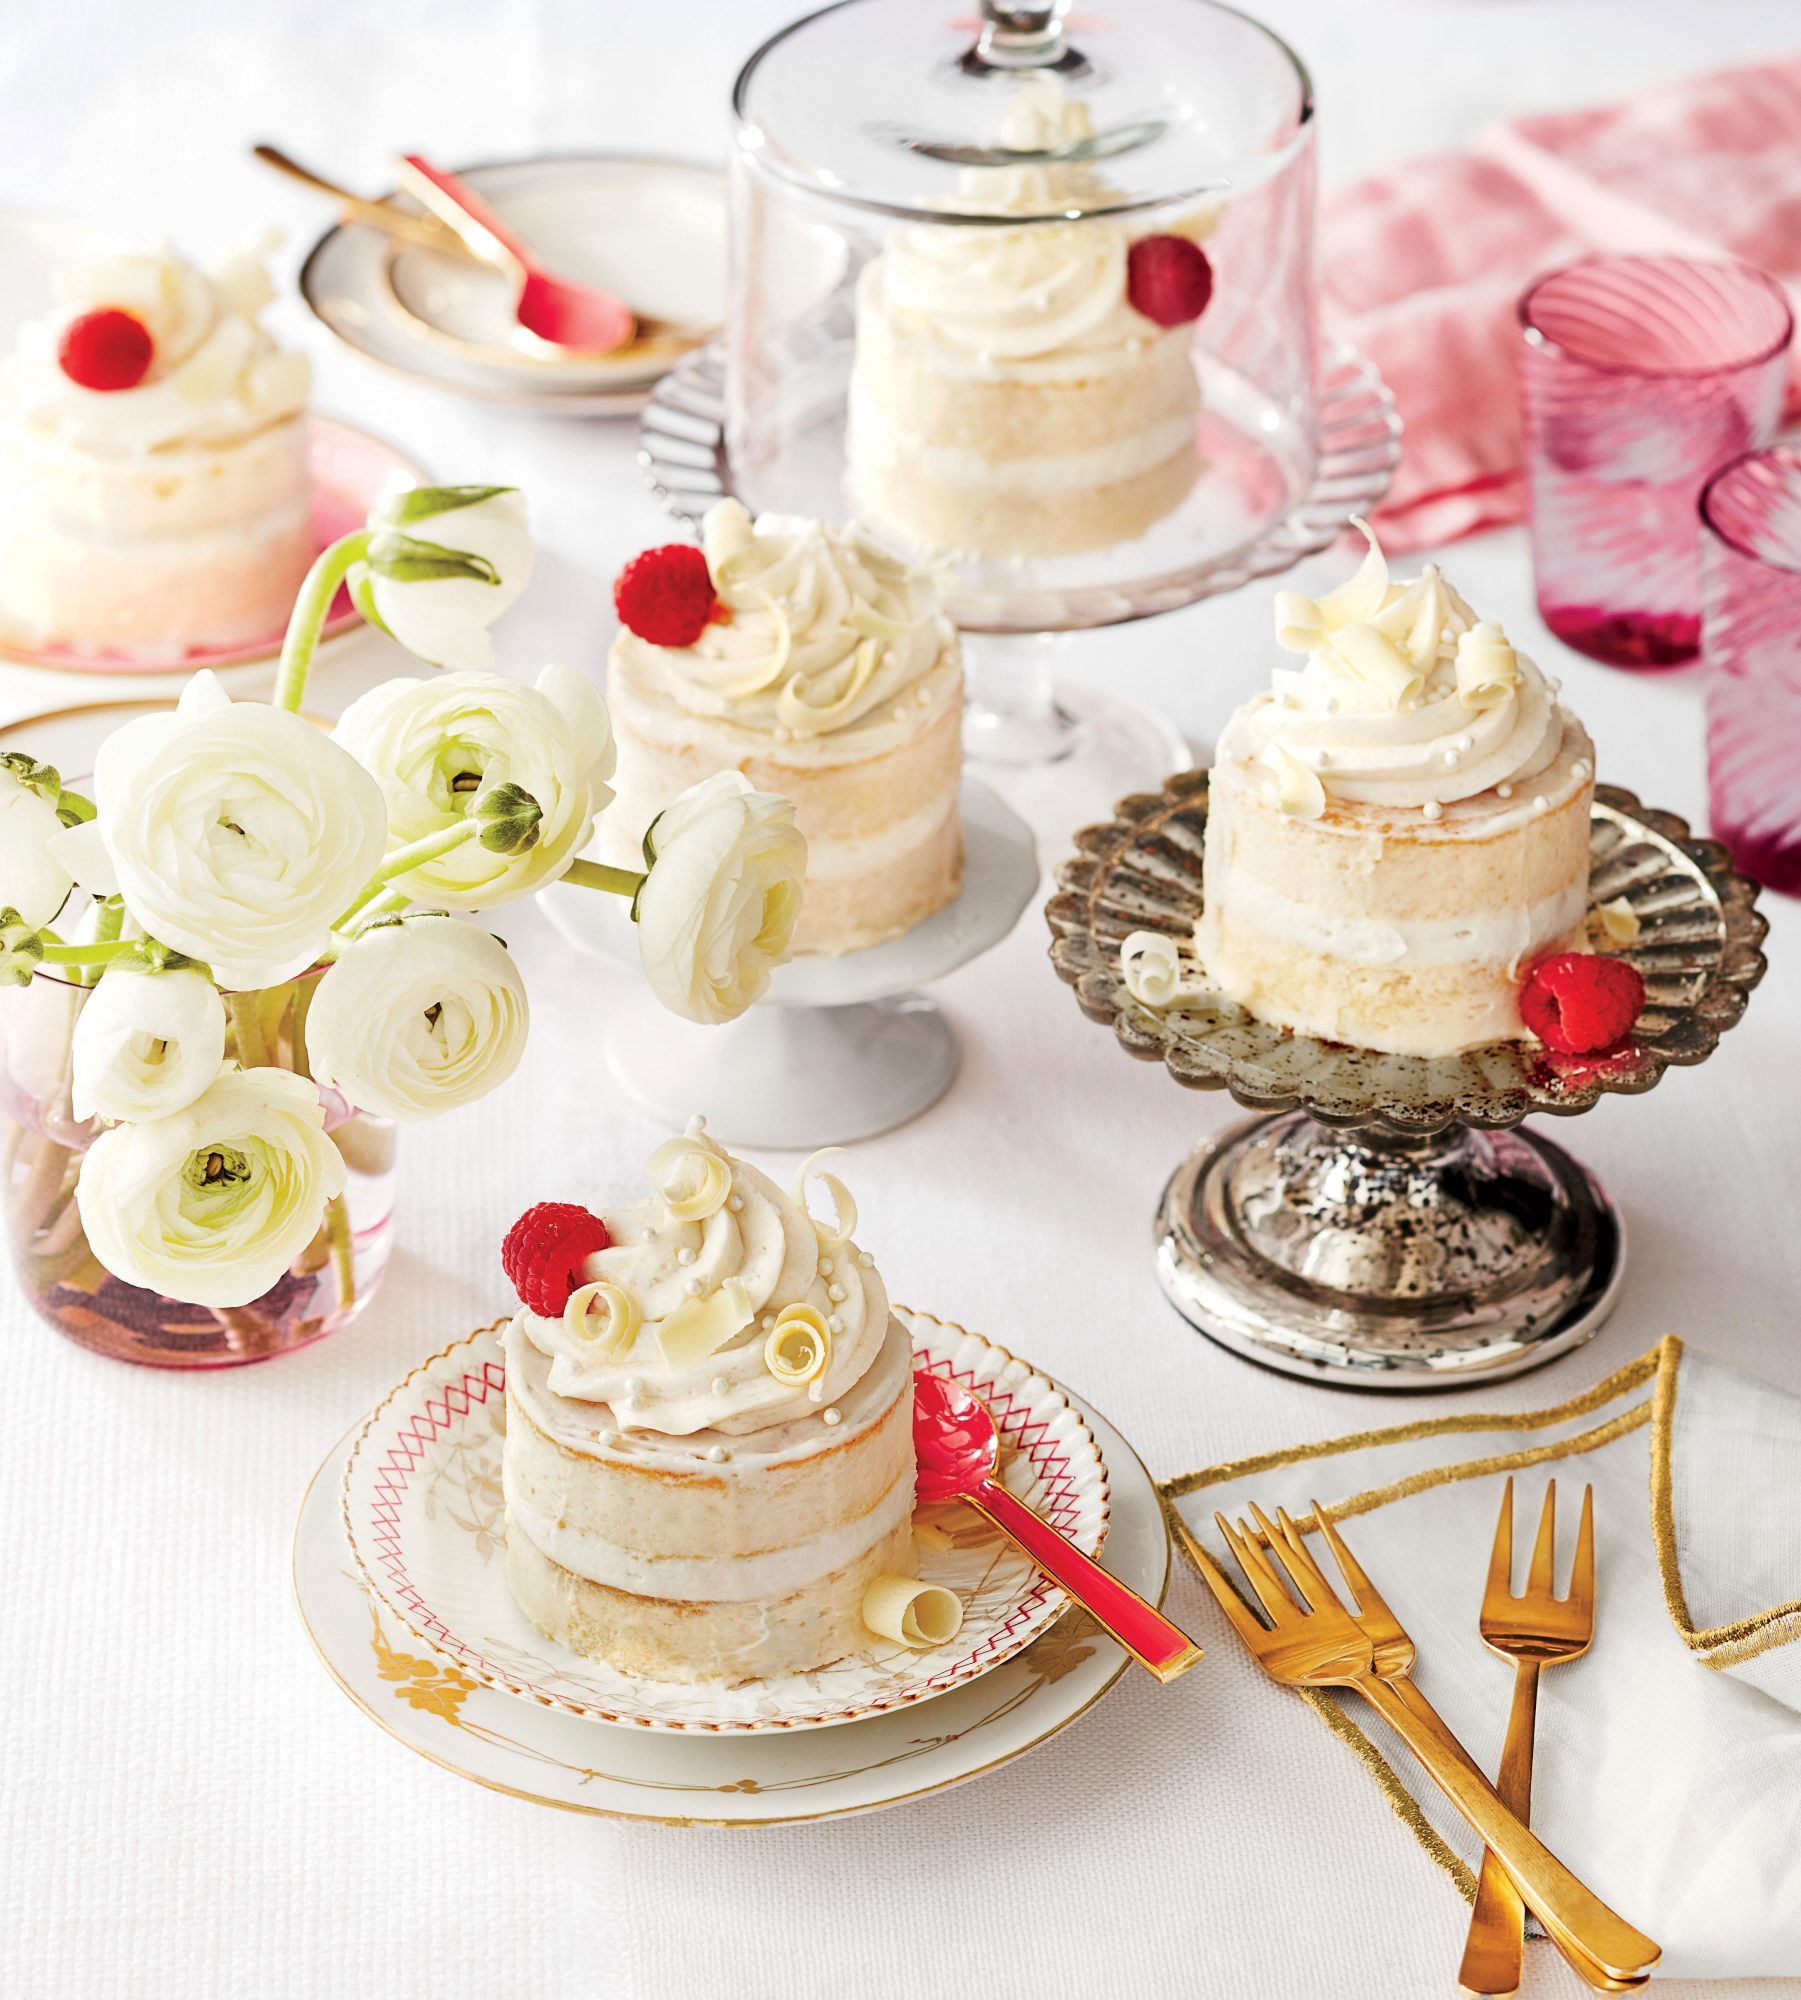 Ermilk Lime Mini Cakes With Vanilla Mascarpone Ercream Recipe Southern Living